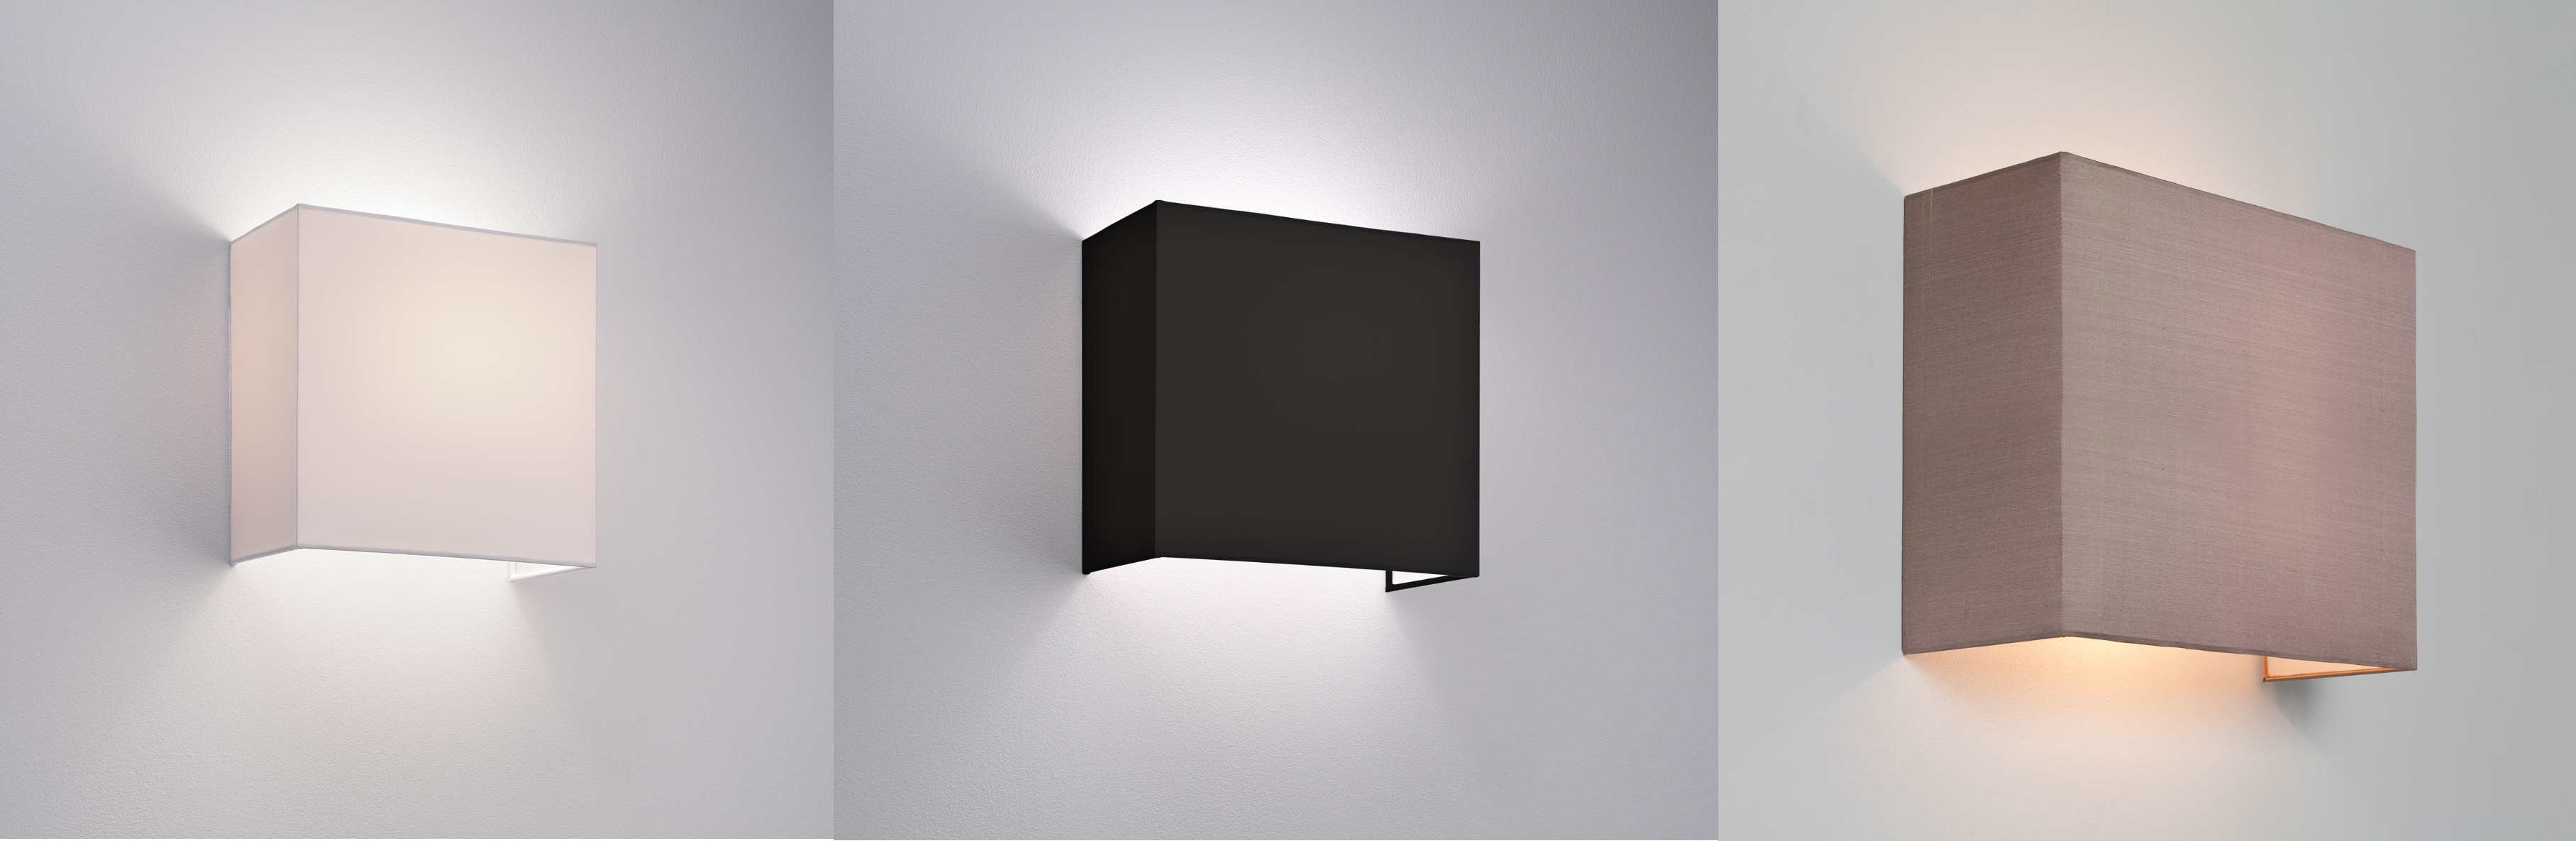 wall light with shade astro chuo 250 fabric wall light shade 60w e27 white black oyster ebay